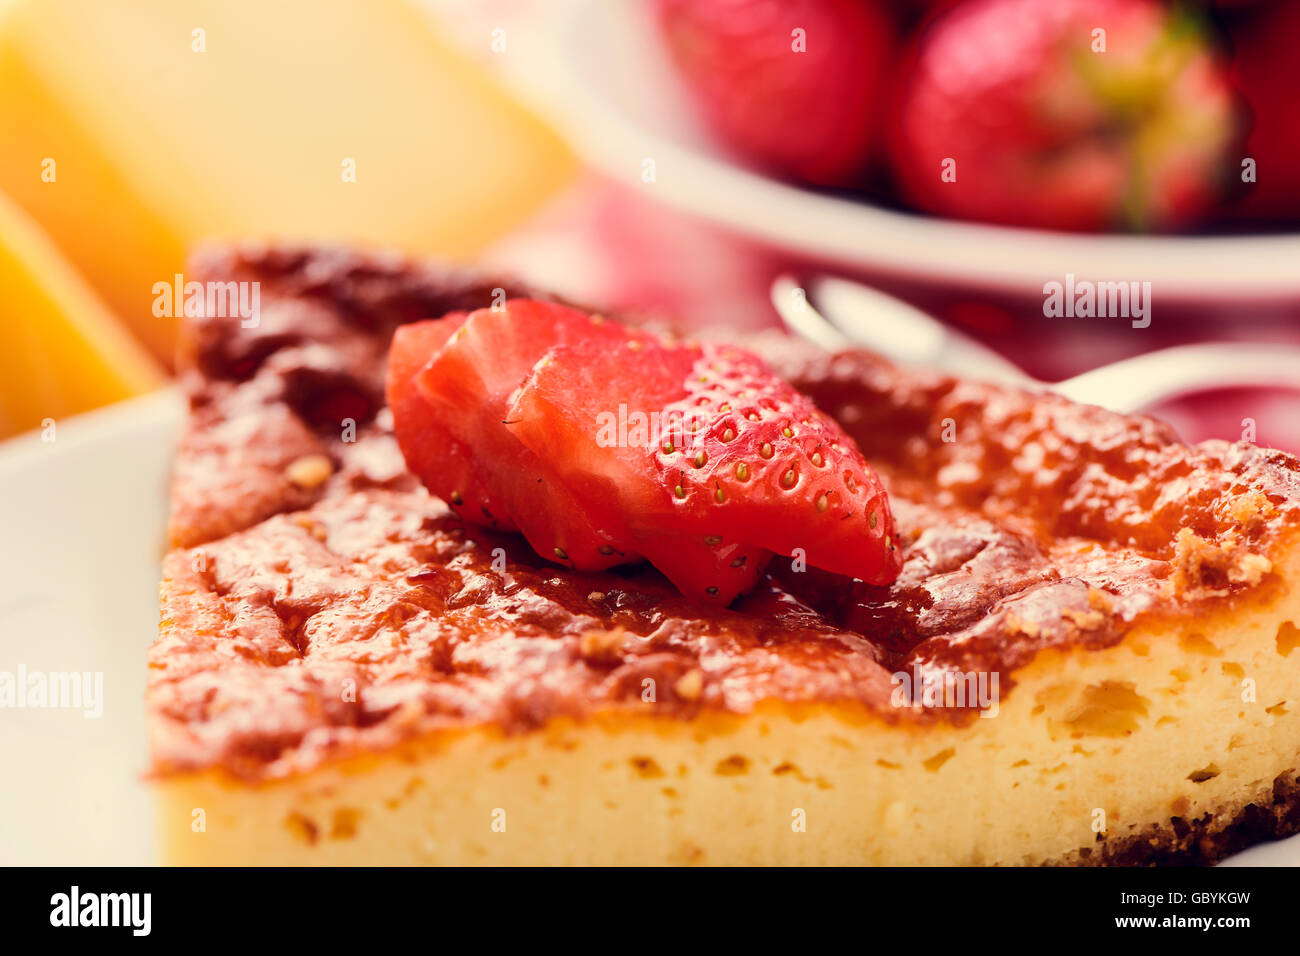 closeup of a plate with a piece of homemade cheesecake topped with sliced strawberries on a set table - Stock Image